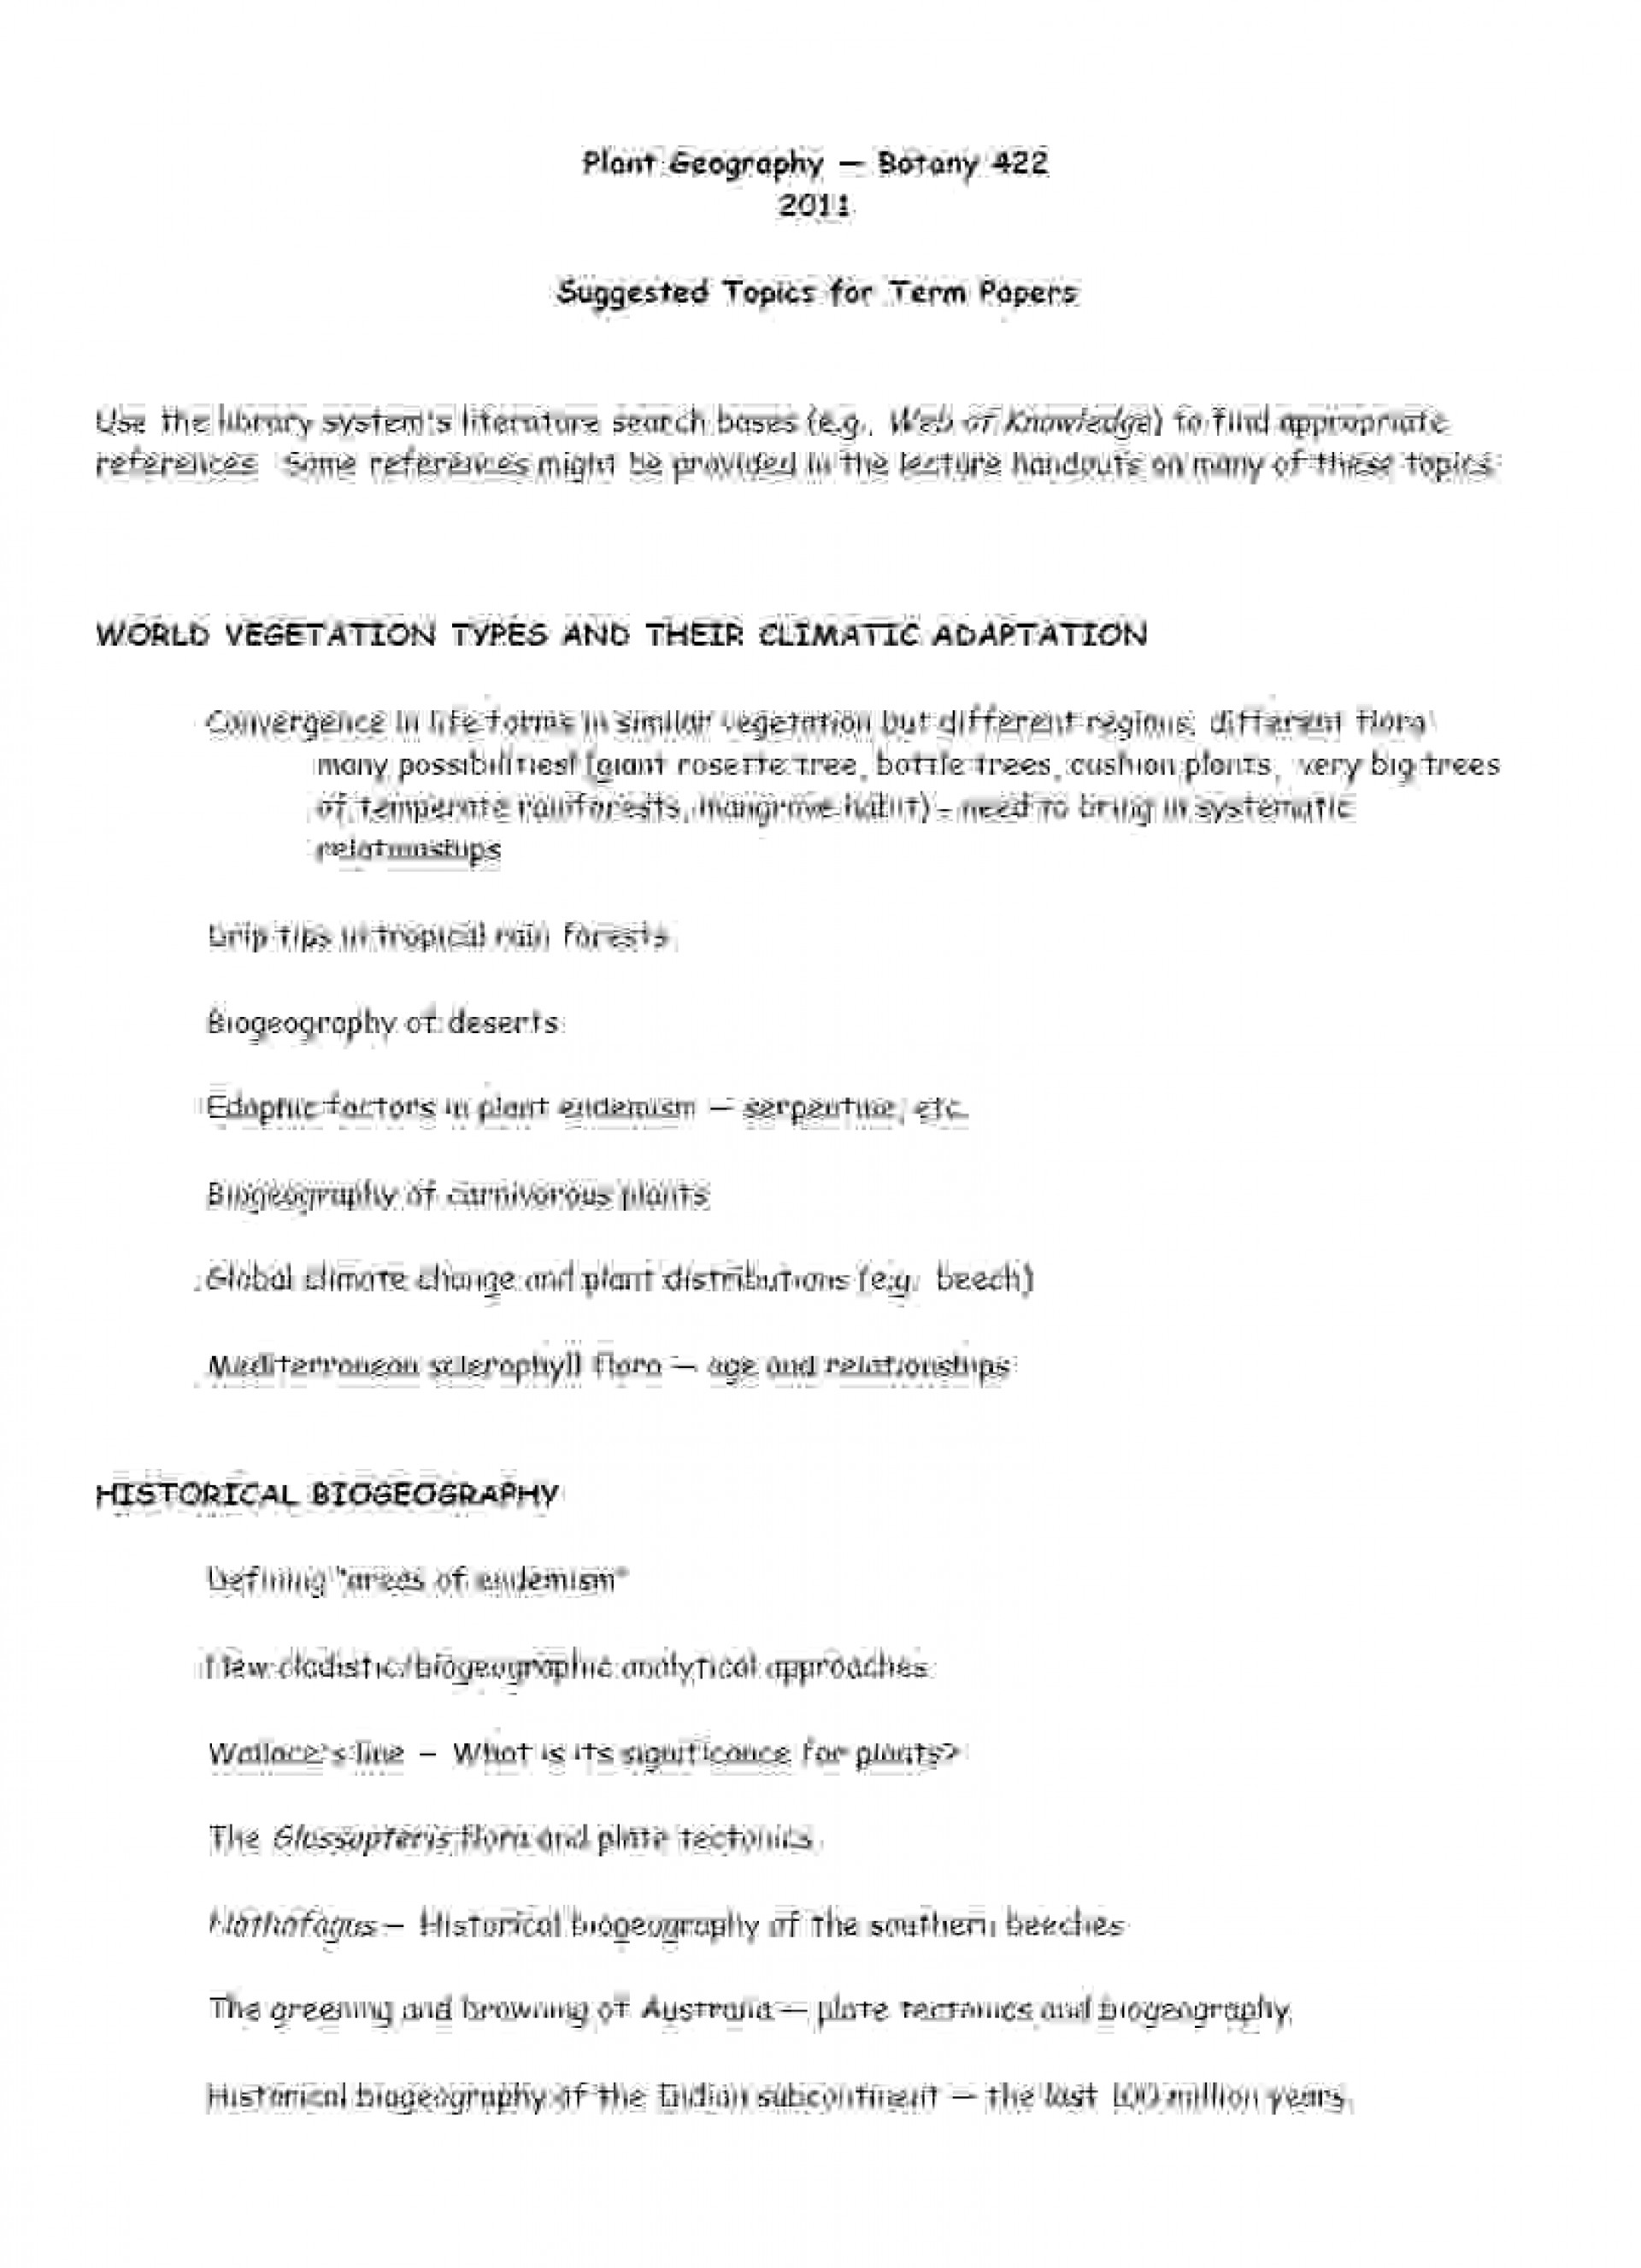 008 Term Paper Topic Suggestions Interesting Essay Topics Amazing Descriptive To Write About For Grade 8 In Urdu Synthesis 1920